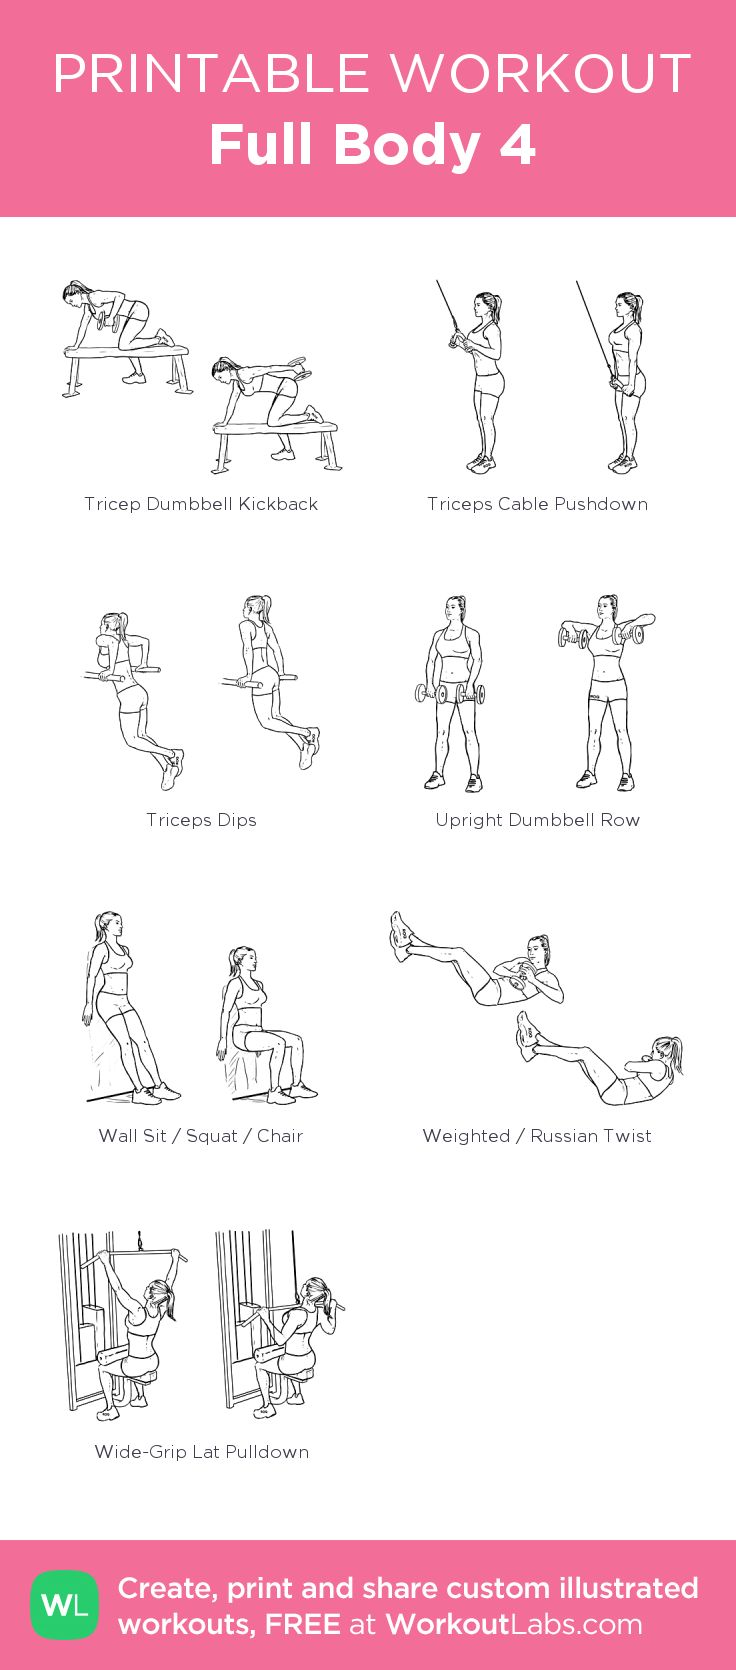 It's just a picture of Amazing Printable Gym Workouts